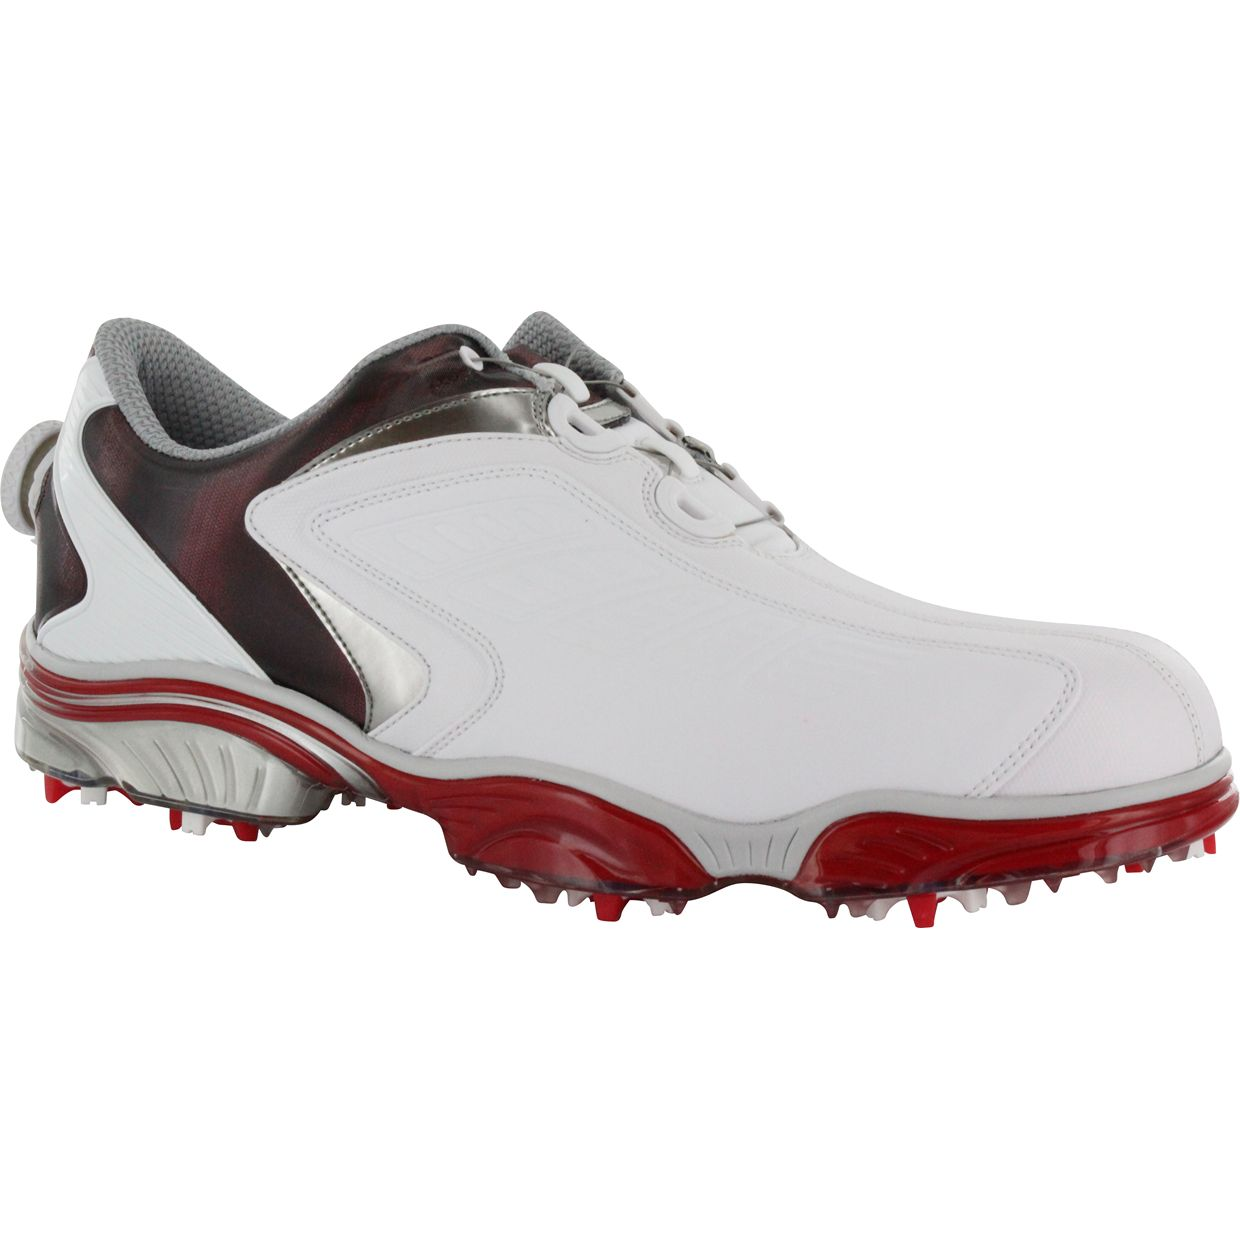 footjoy s golf shoes at globalgolf